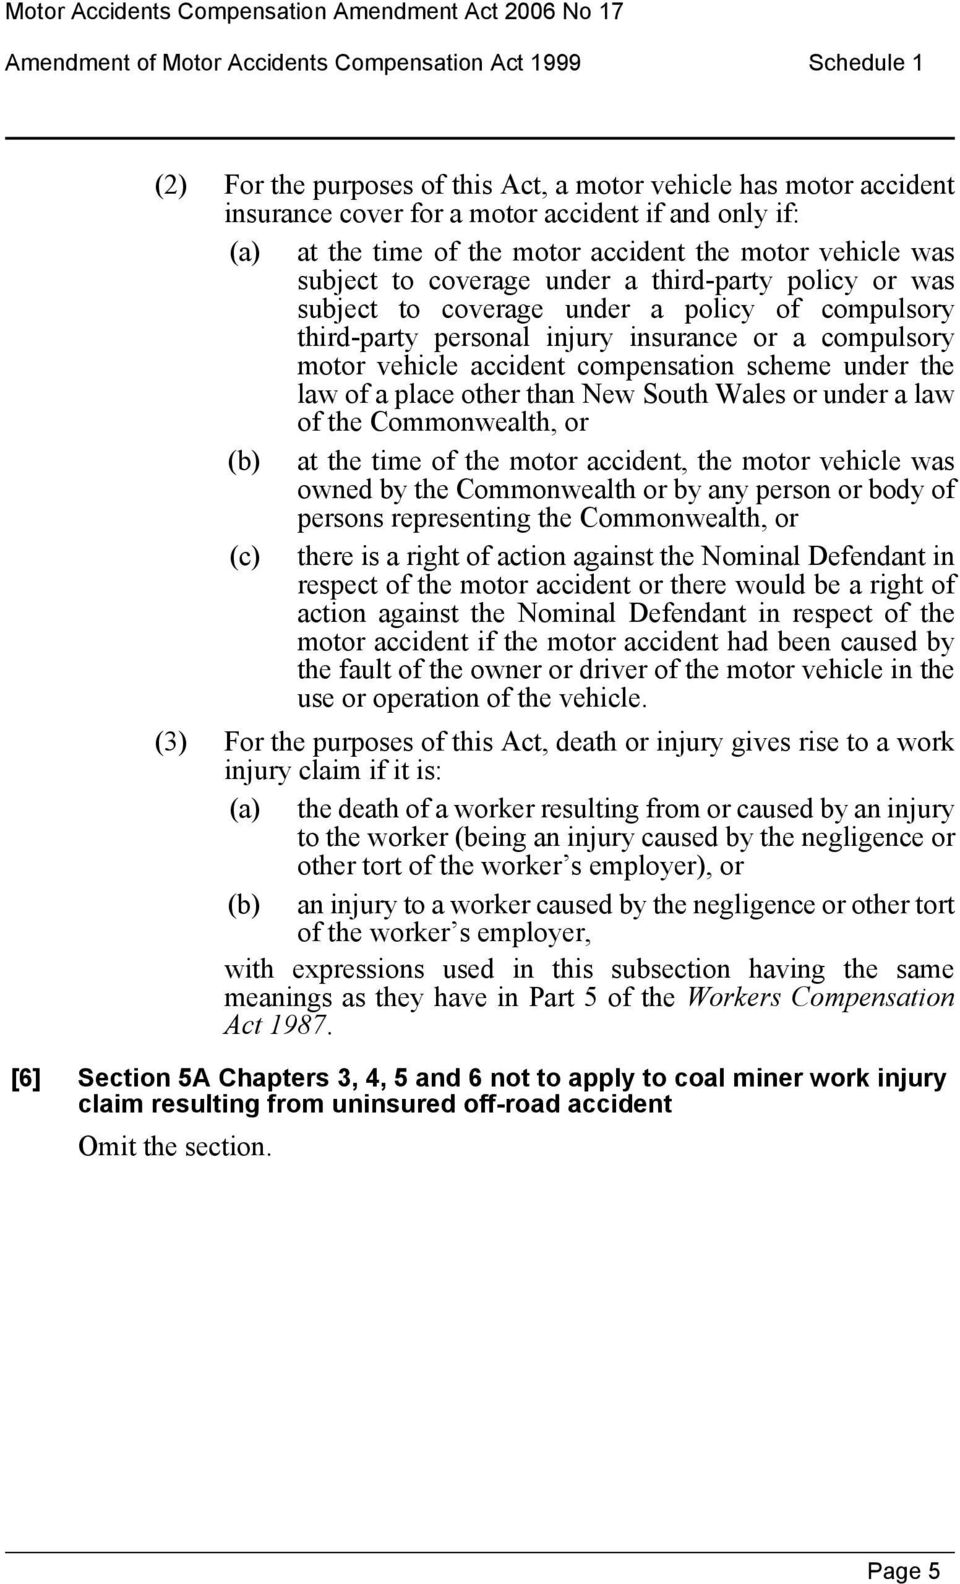 compulsory motor vehicle accident compensation scheme under the law of a place other than New South Wales or under a law of the Commonwealth, or (b) at the time of the motor accident, the motor